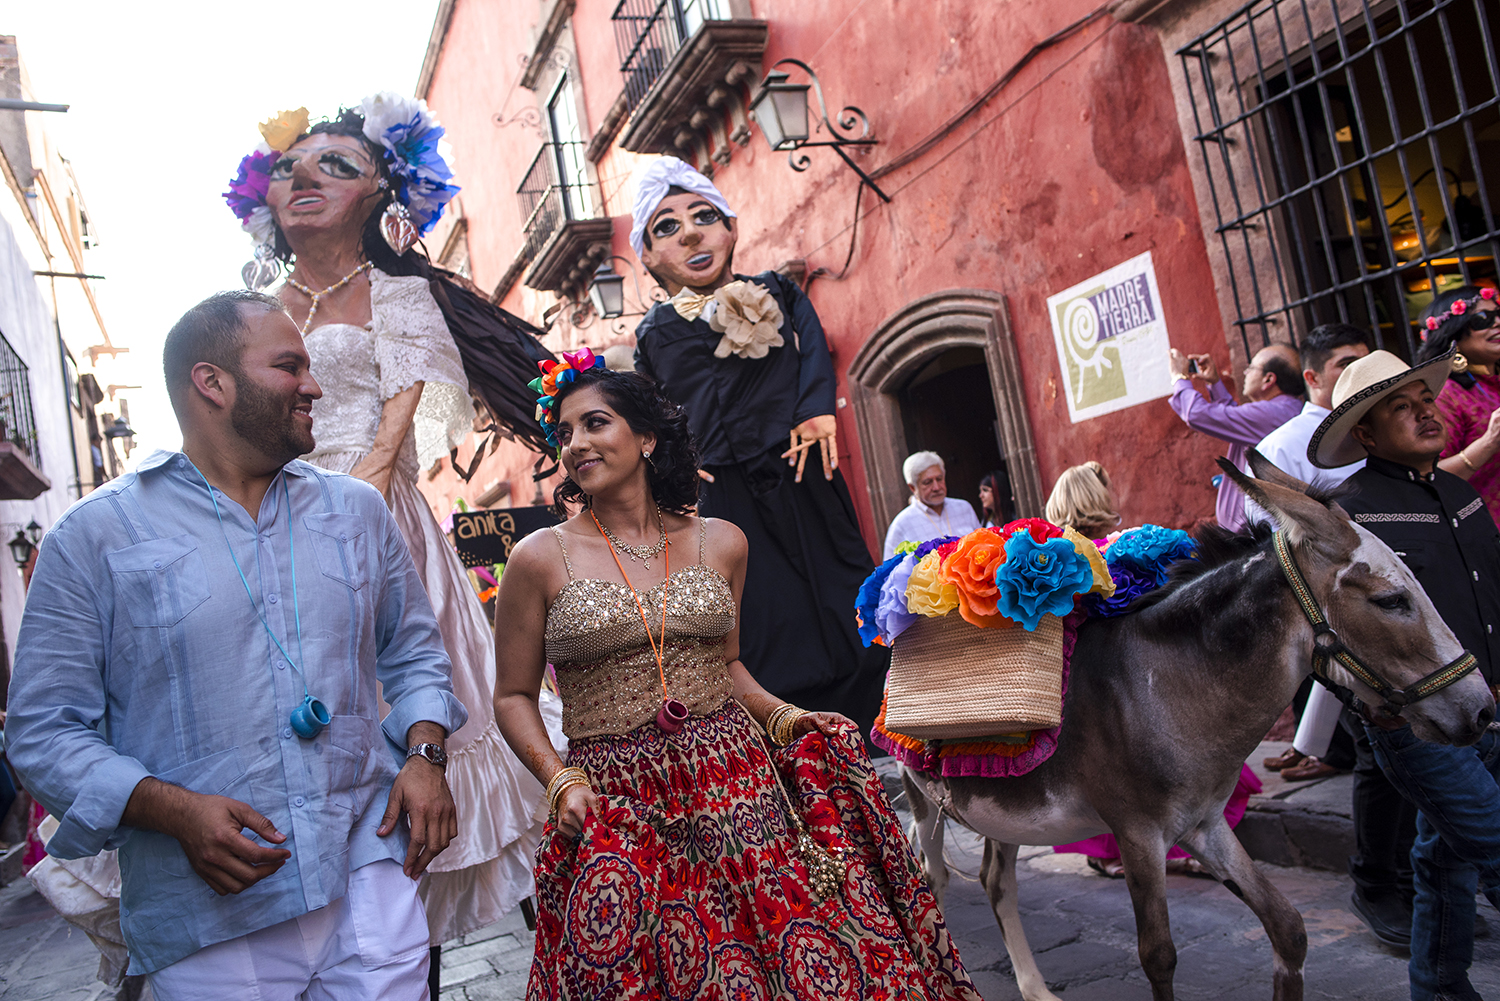 indian_wedding_san_miguel_de_allende_chio_garcia_photographer (6).jpg